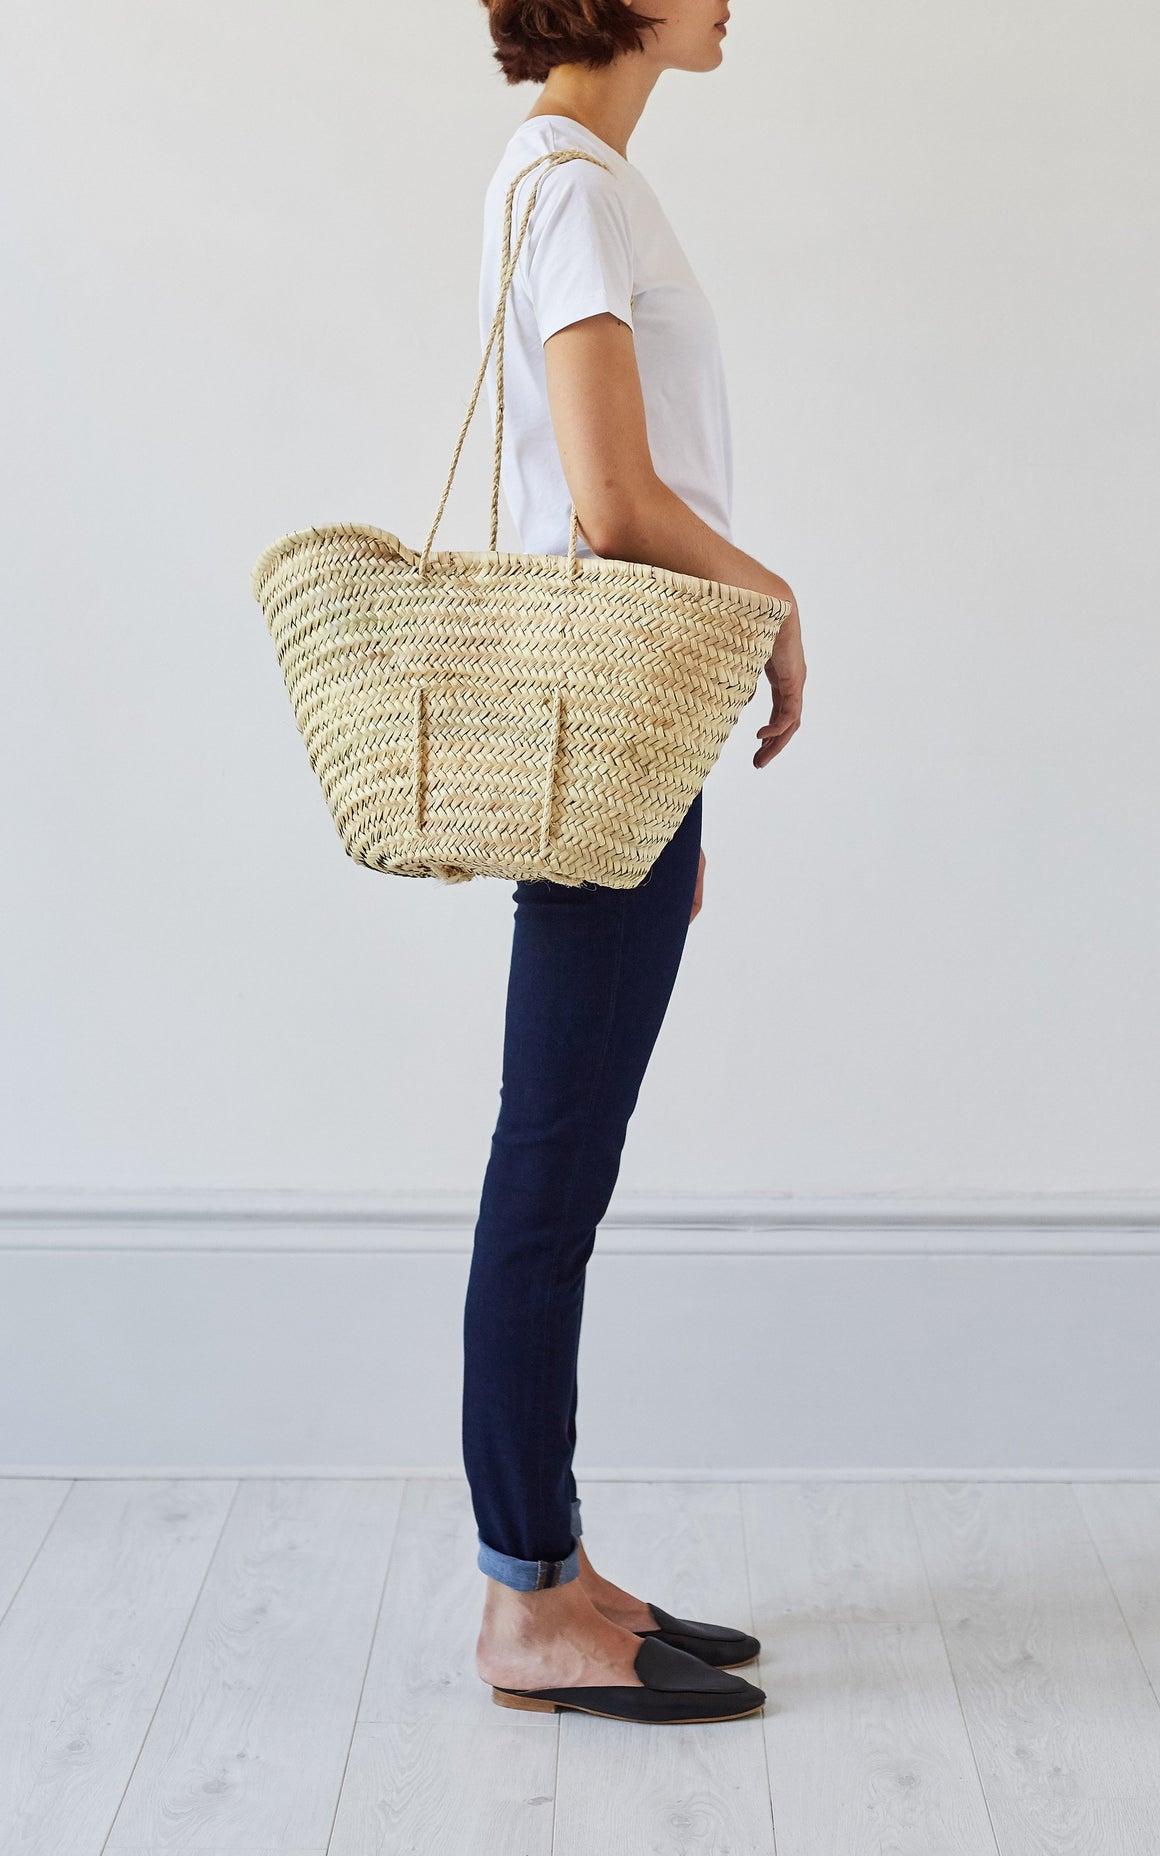 Woven Shopper Basket, Basket Bag - Grace Gordon